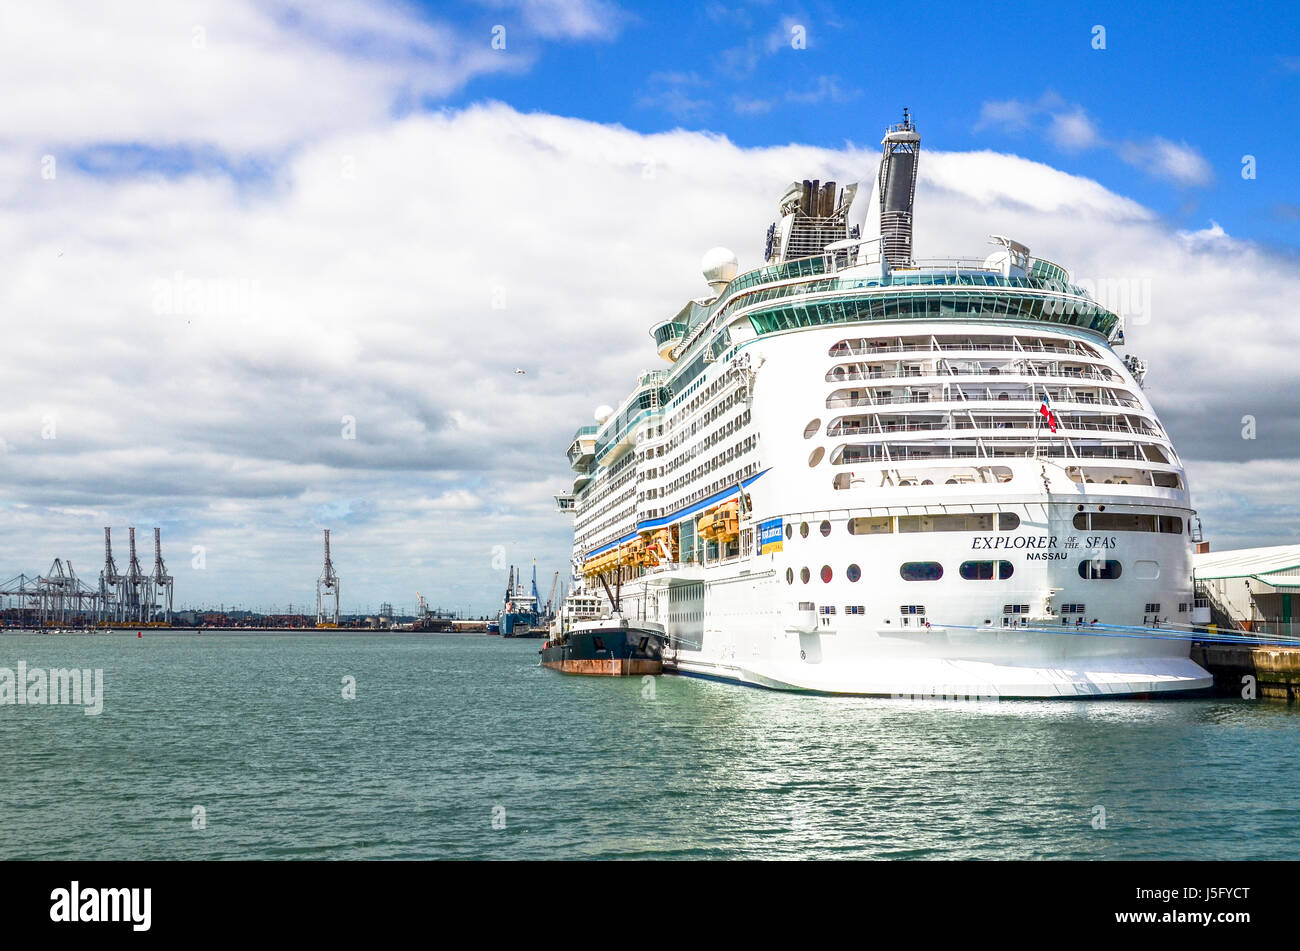 The Explorer of the Seas cruise liner at the Port of Southampton - Stock Image